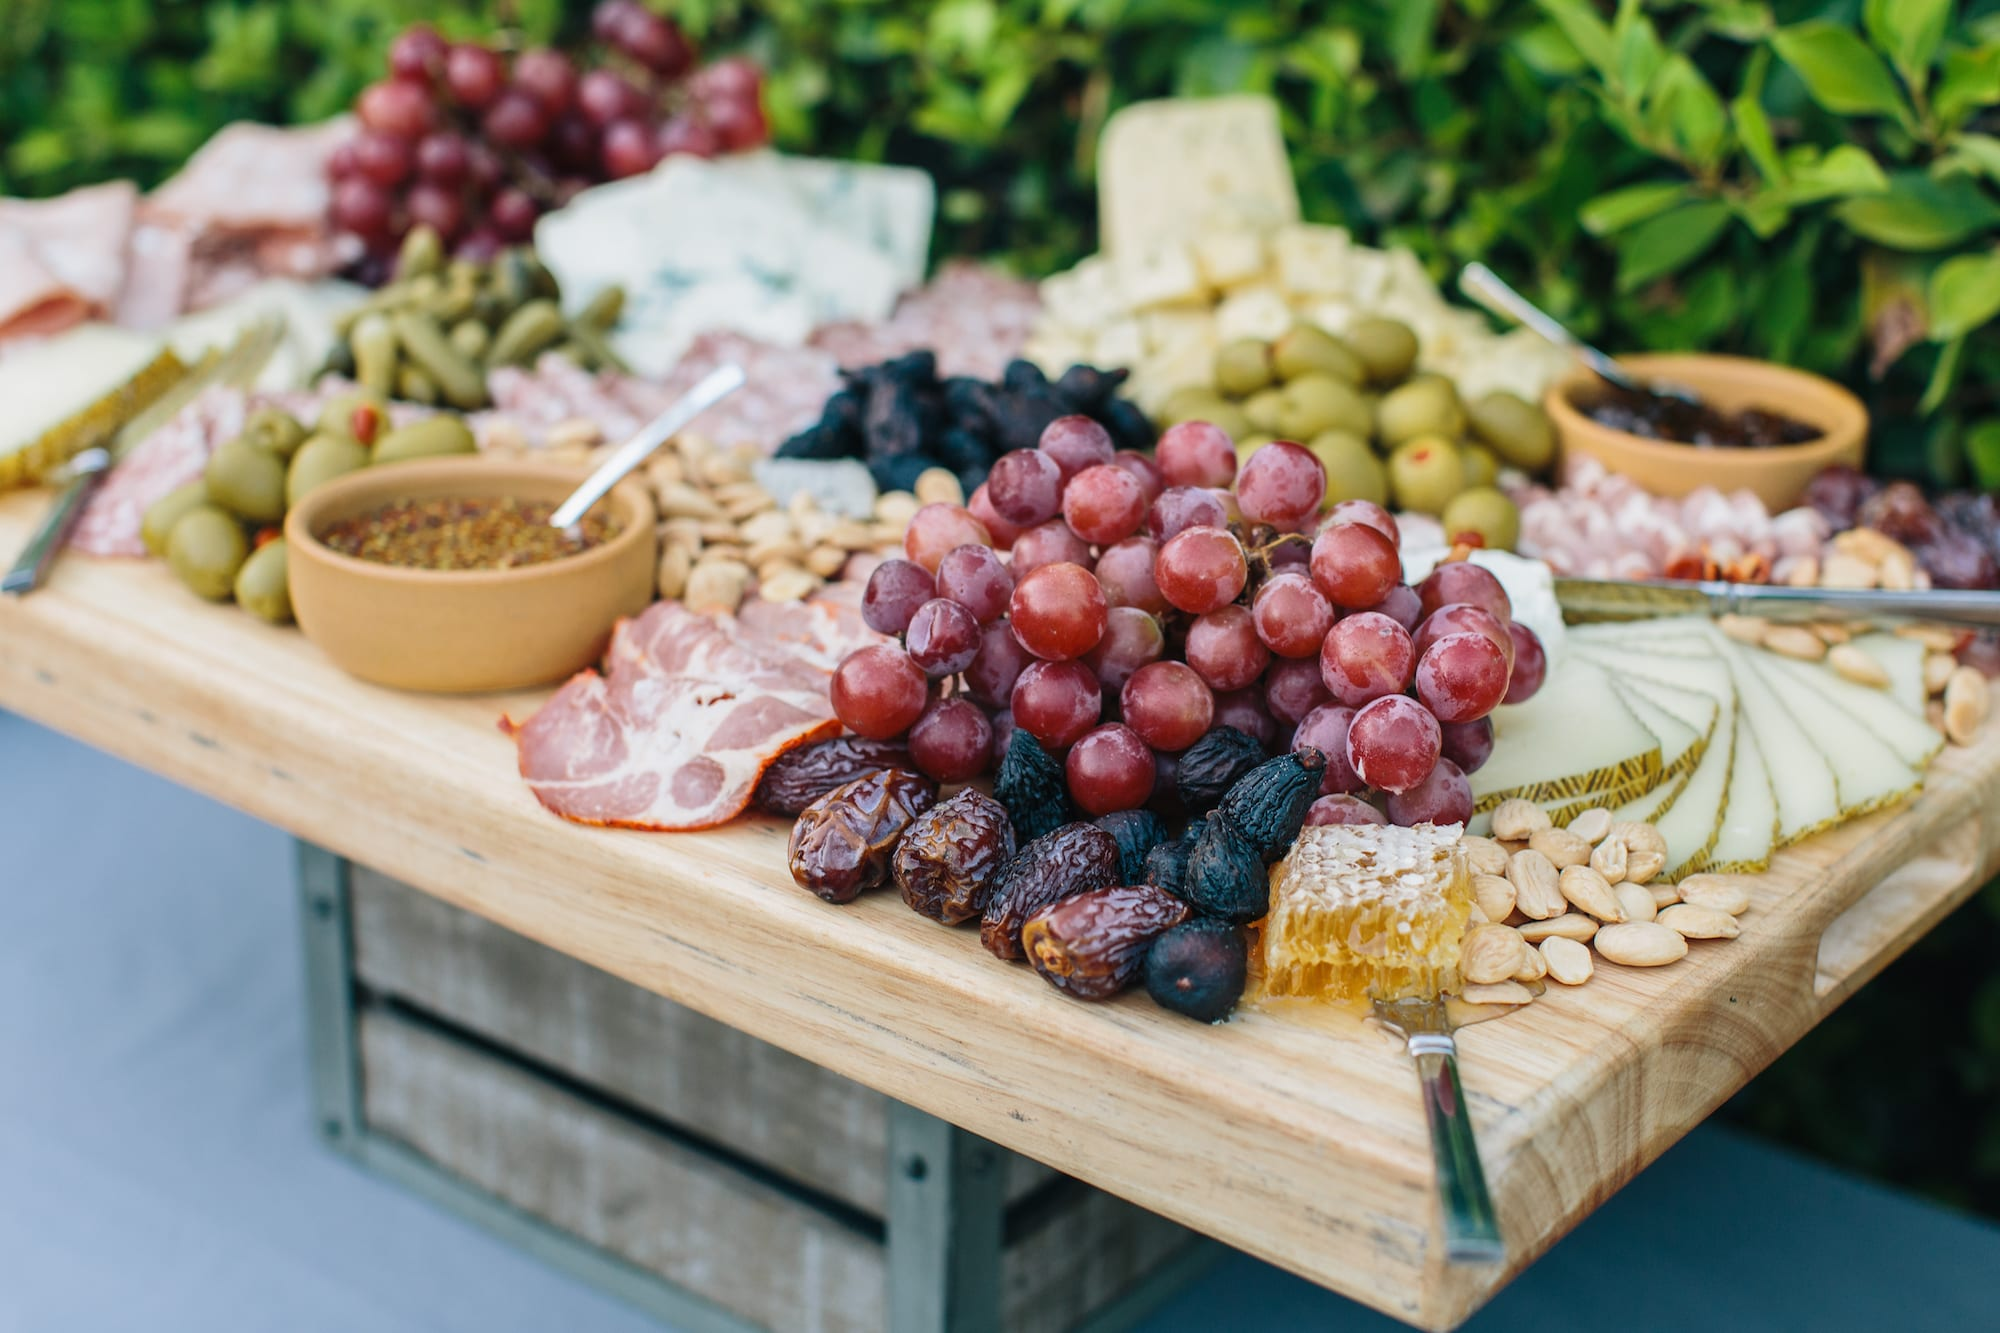 Closeup of wooden table with grapes, dates, nuts, olives and cheeses